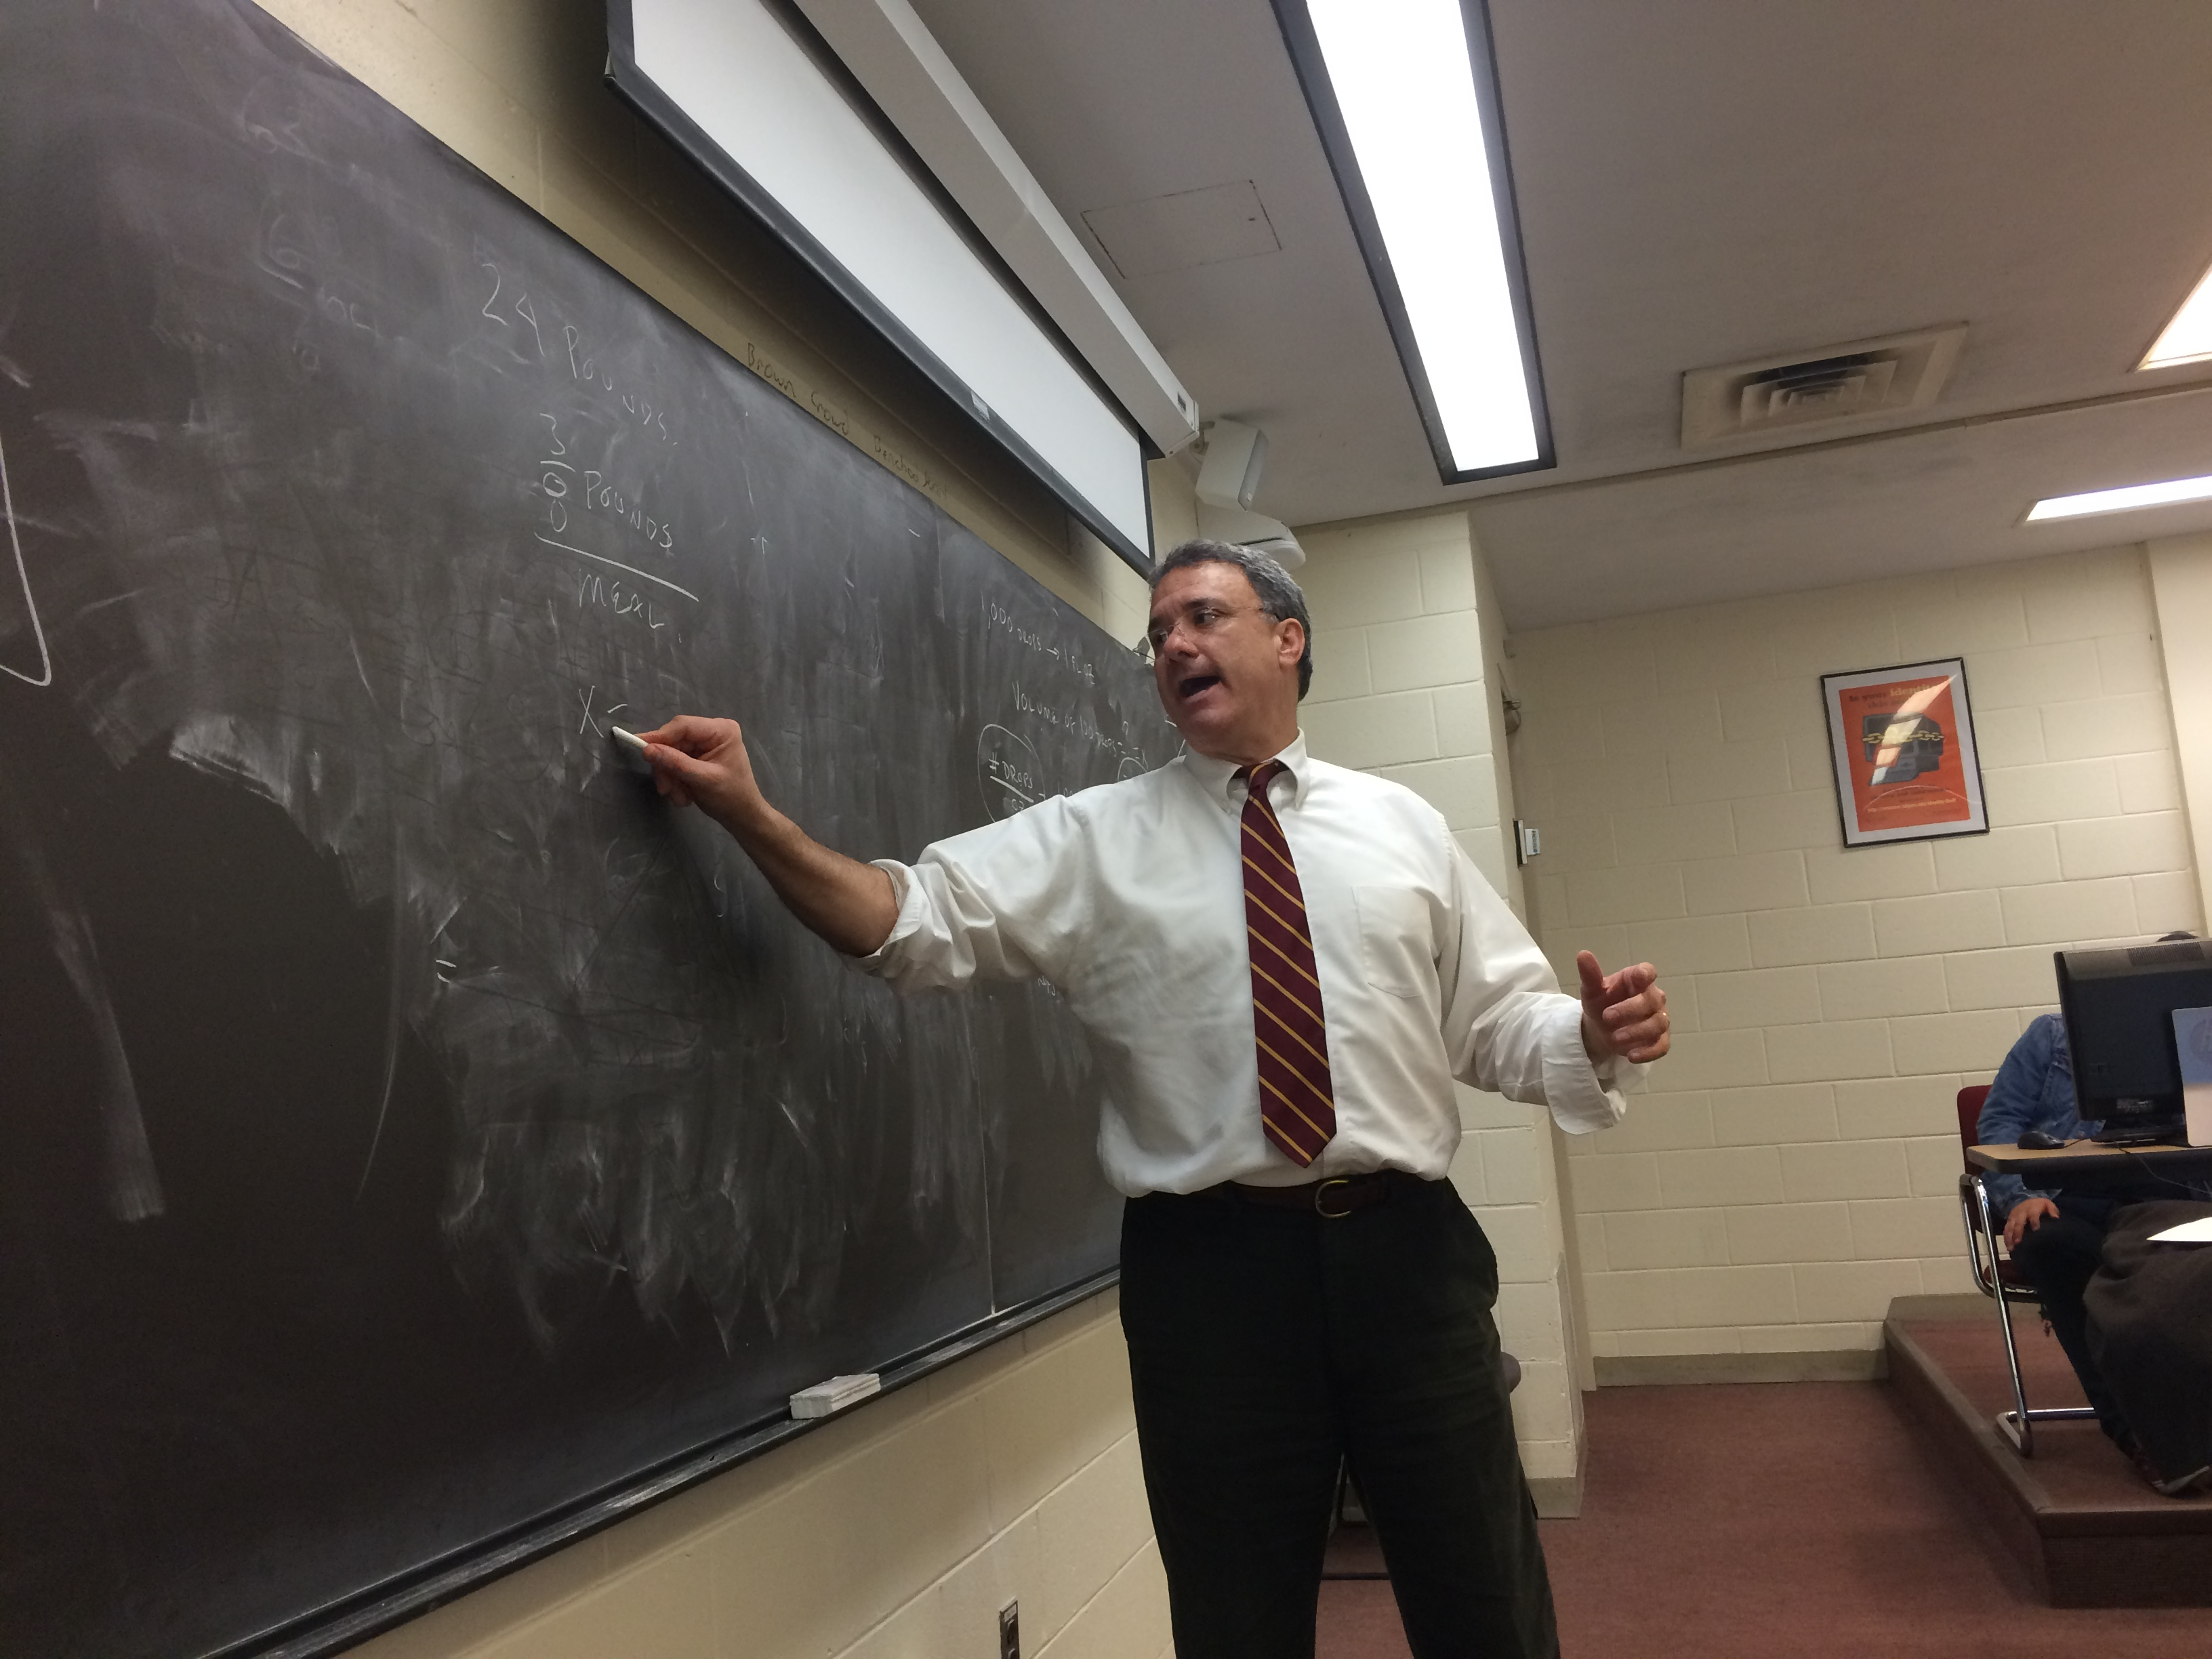 In college remedial classes, unprepared students get